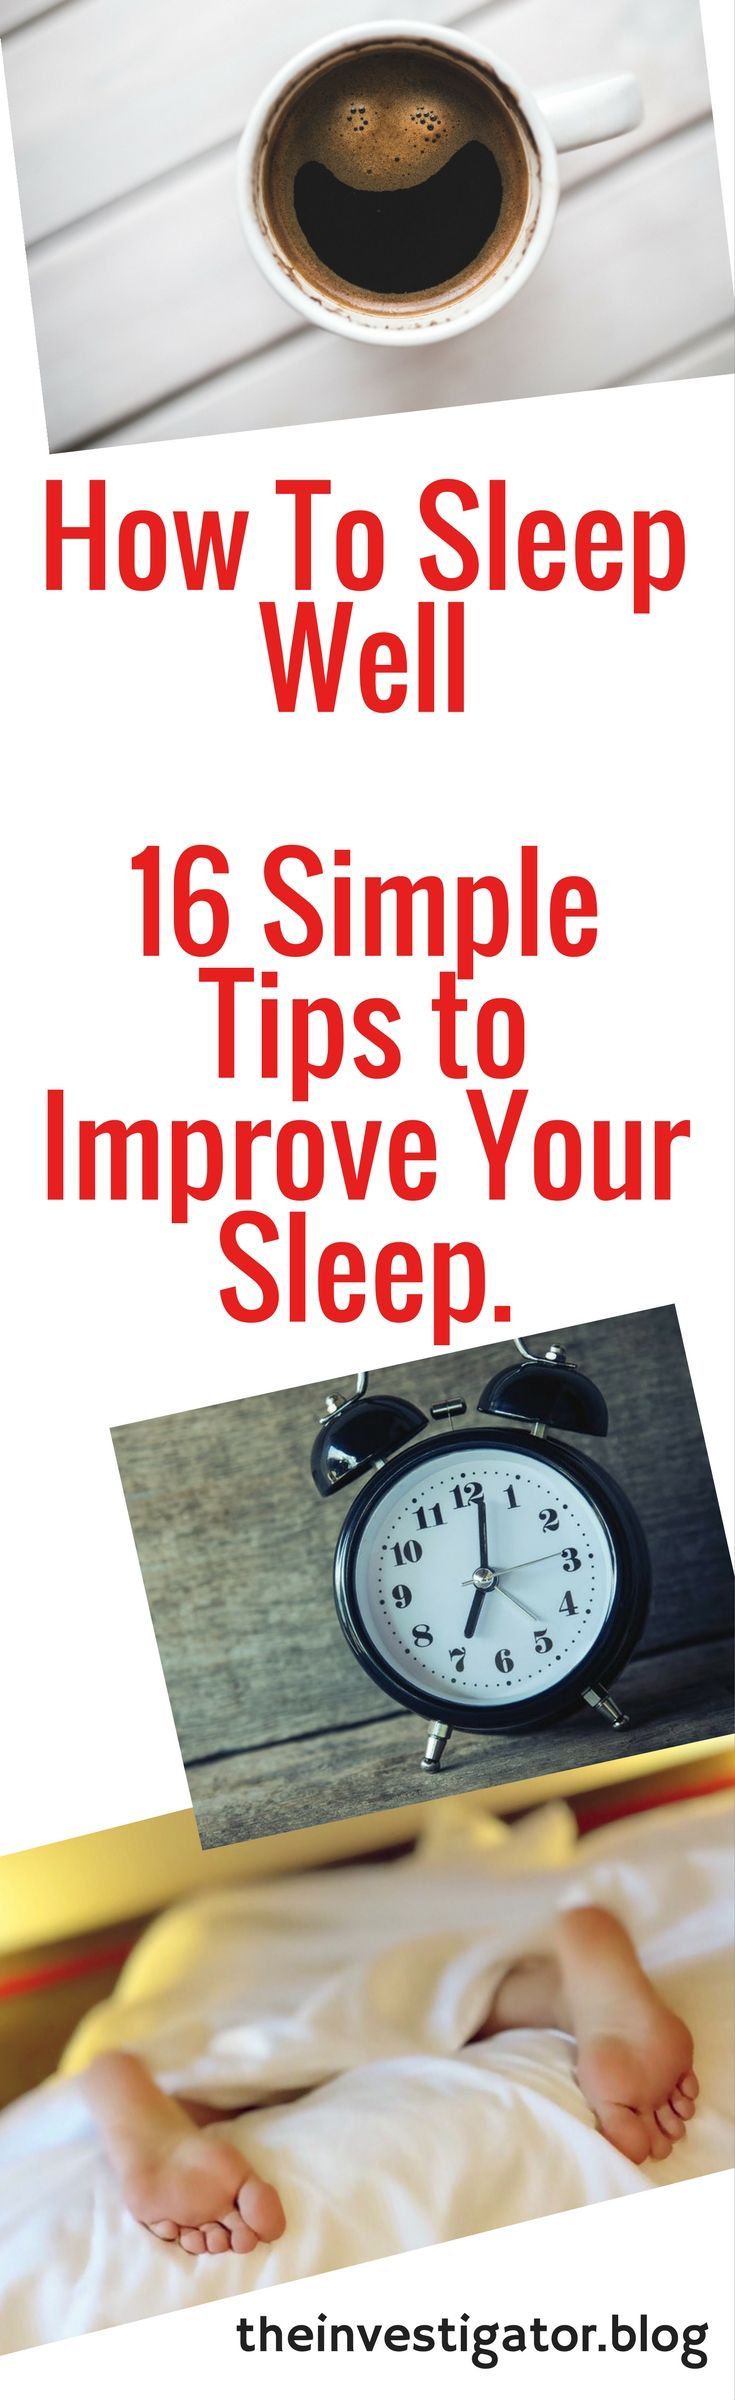 How To Sleep Well  – 16 Simple Tips to Improve Your Sleep. http://theinvestigator.blog/2018/01/05/how-to-sleep-well-16-simple-tips-to-improve-your-sleep/  Did you know that sleeping well directly affects your mental and physical health?   The lack of sleep can take a severe toll on your energy, productivity, emotional balance, and even your weight.   So here they are  -  16 simple tips for making the sleep of your dreams a nightly reality - leaving you feeling mentally sharp, emotionally…